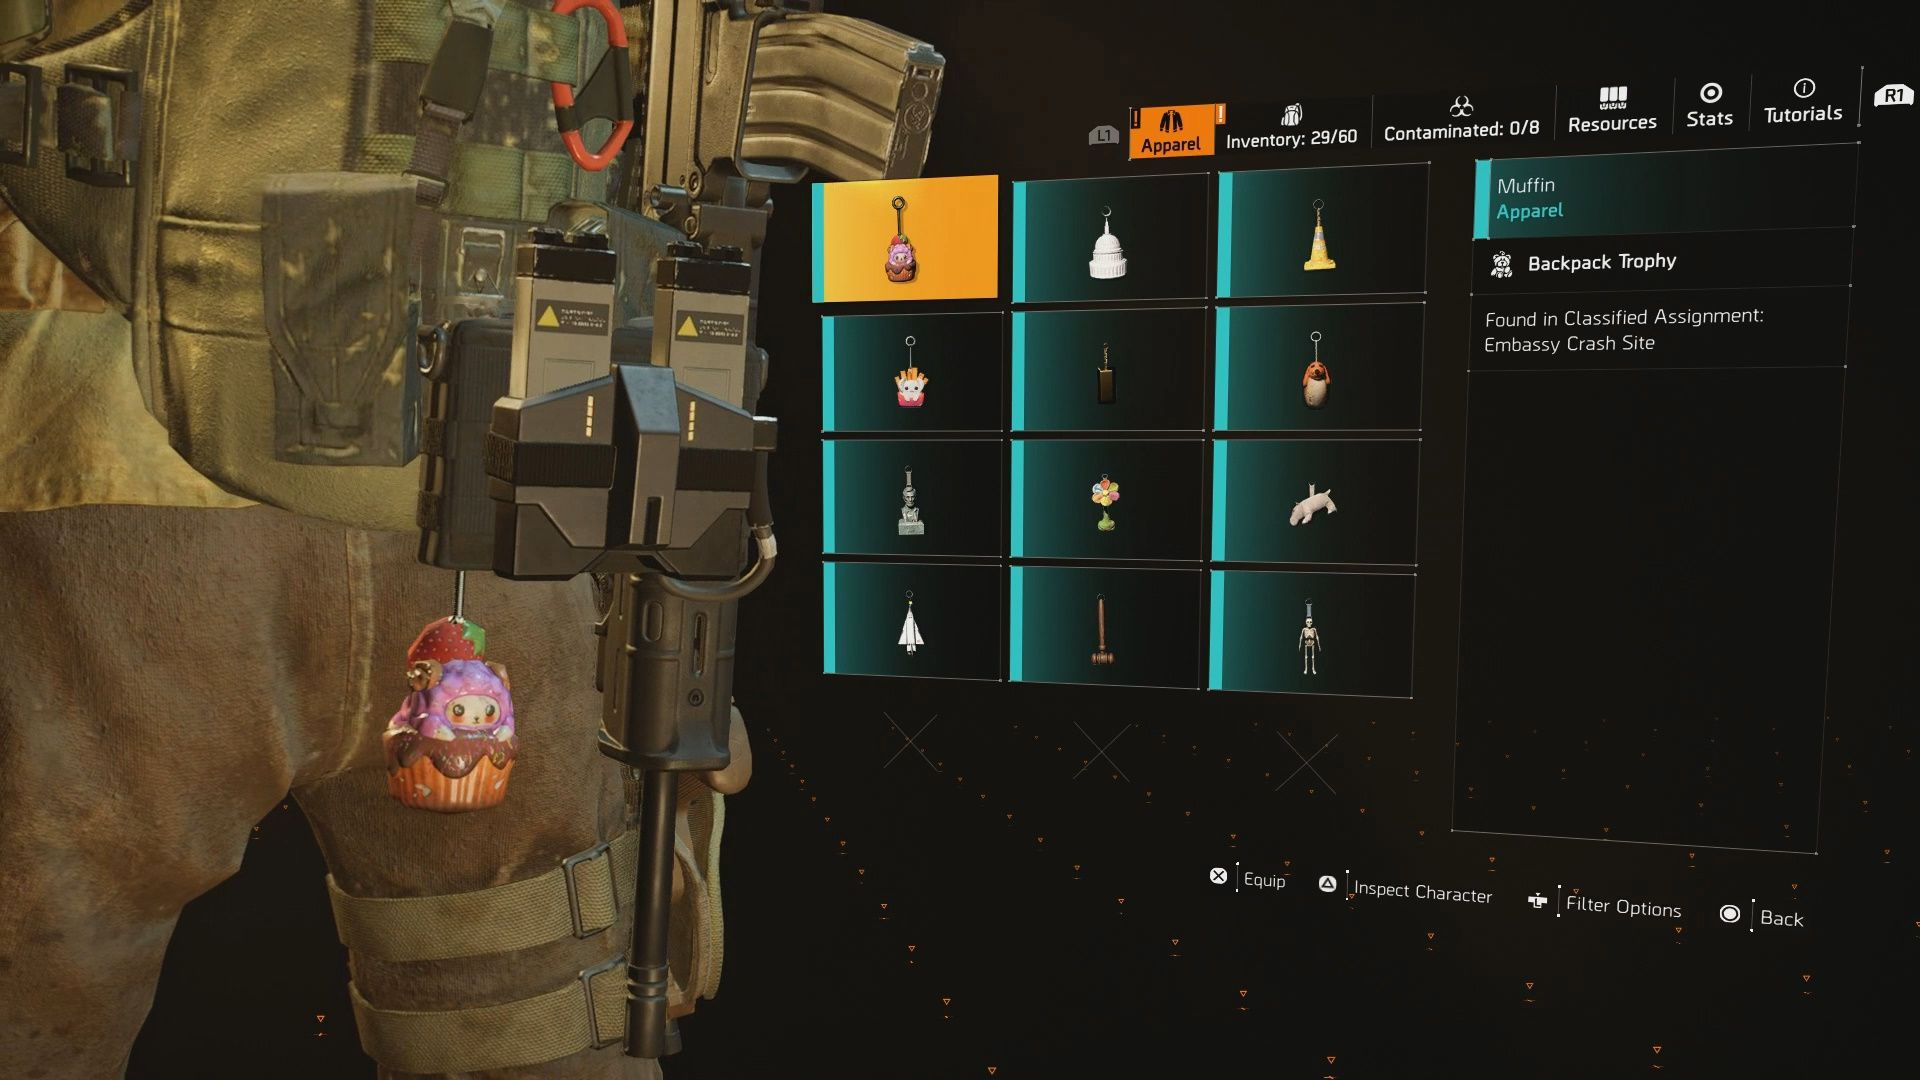 Image showing the Muffin Backpack Trophy in The Division 2.